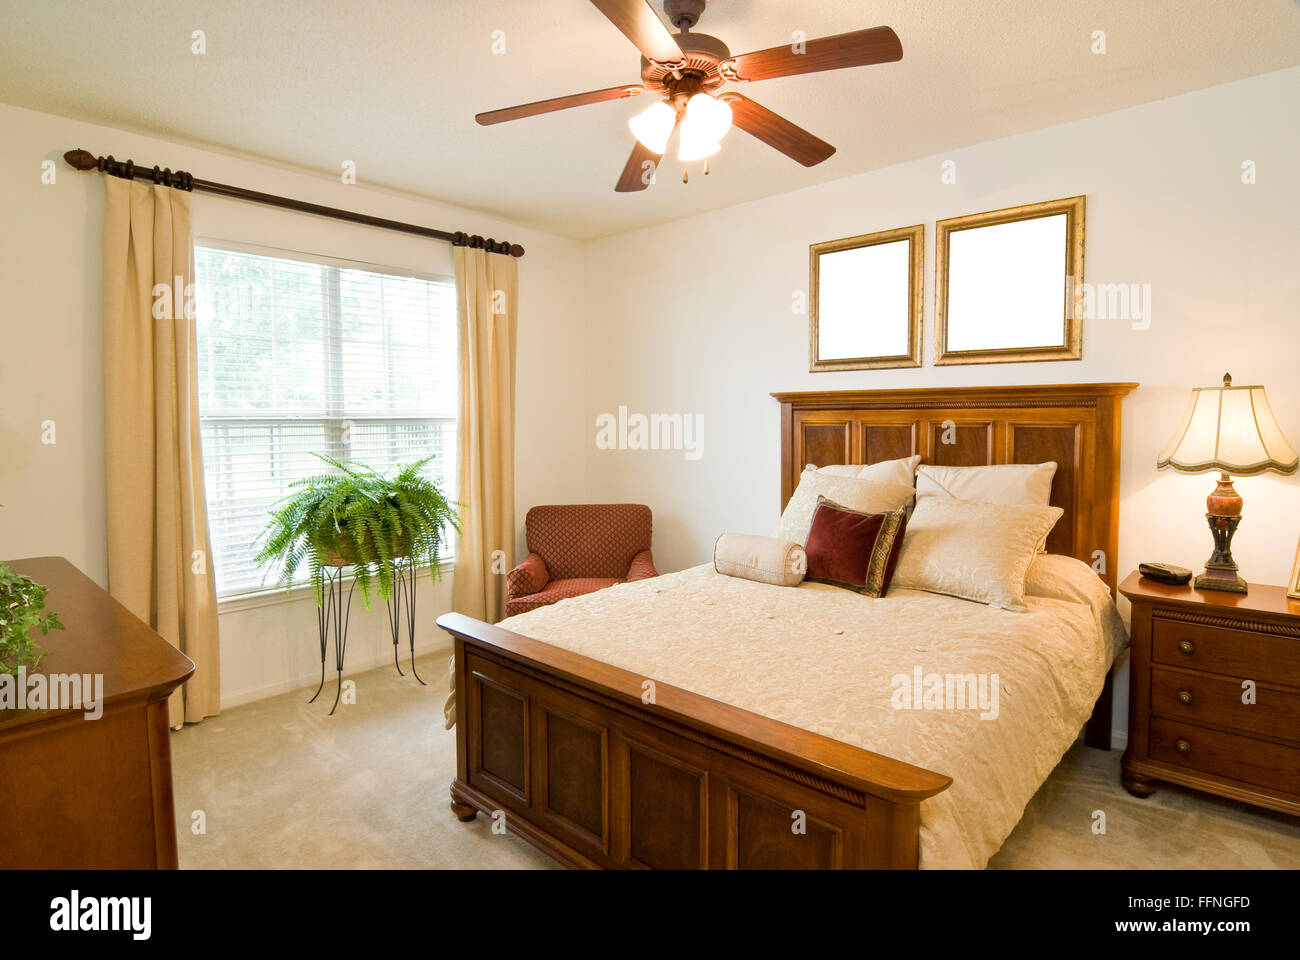 Two Blank Picture Frames In Bedroom - Stock Image